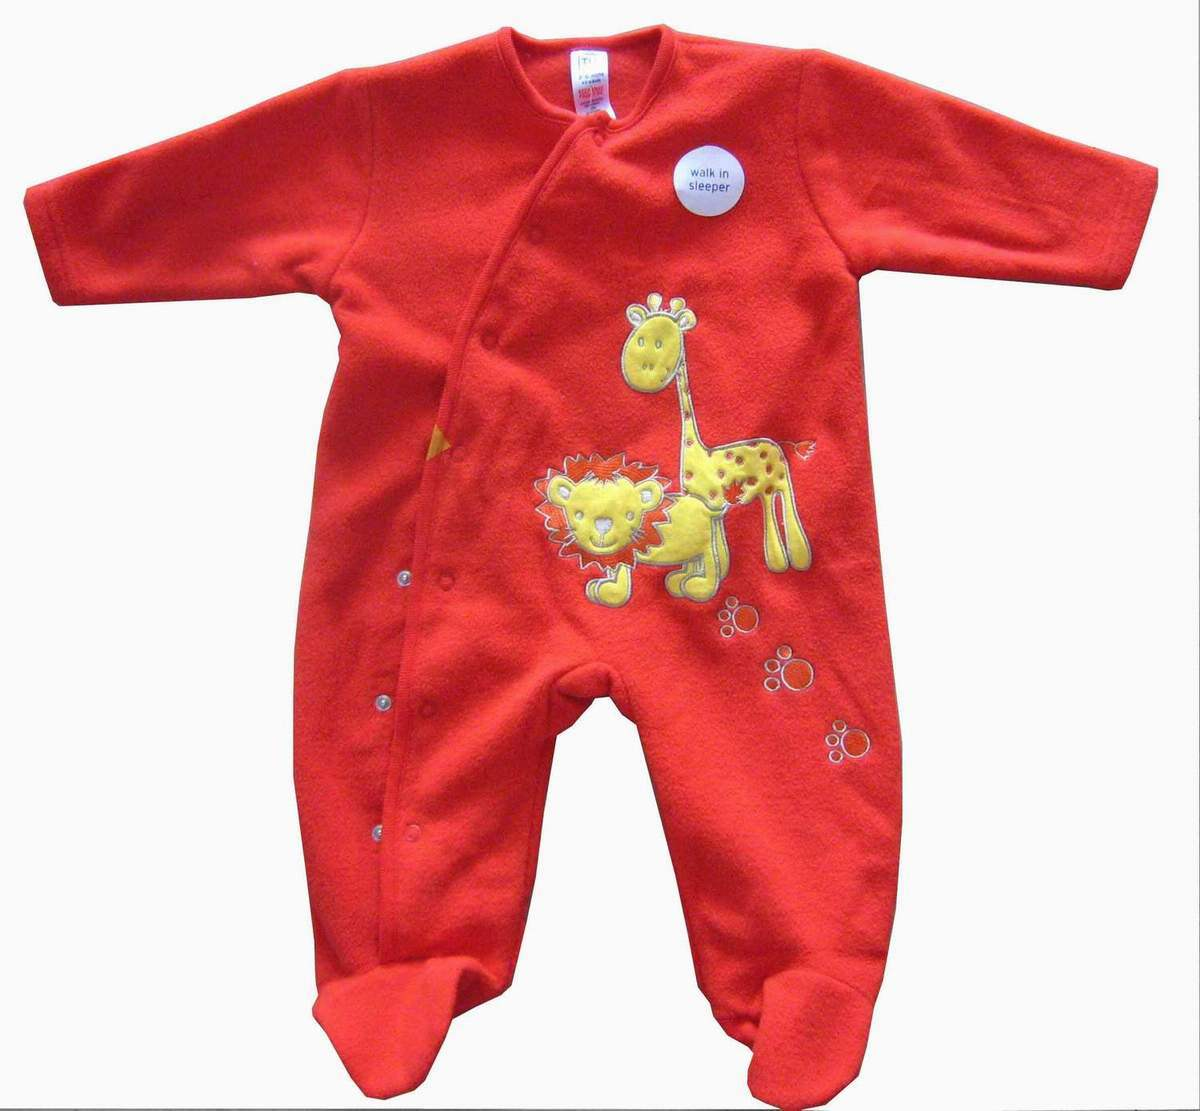 Baby Clothes and Accessories. Outfit your little one with the most precious clothing and gear. Shop baby girls' clothing and baby boys' clothing, accessories, toys and more in a wide range of sizes and lemkecollier.ga bright fun finds for boys to pretty pieces for girls, you're sure .